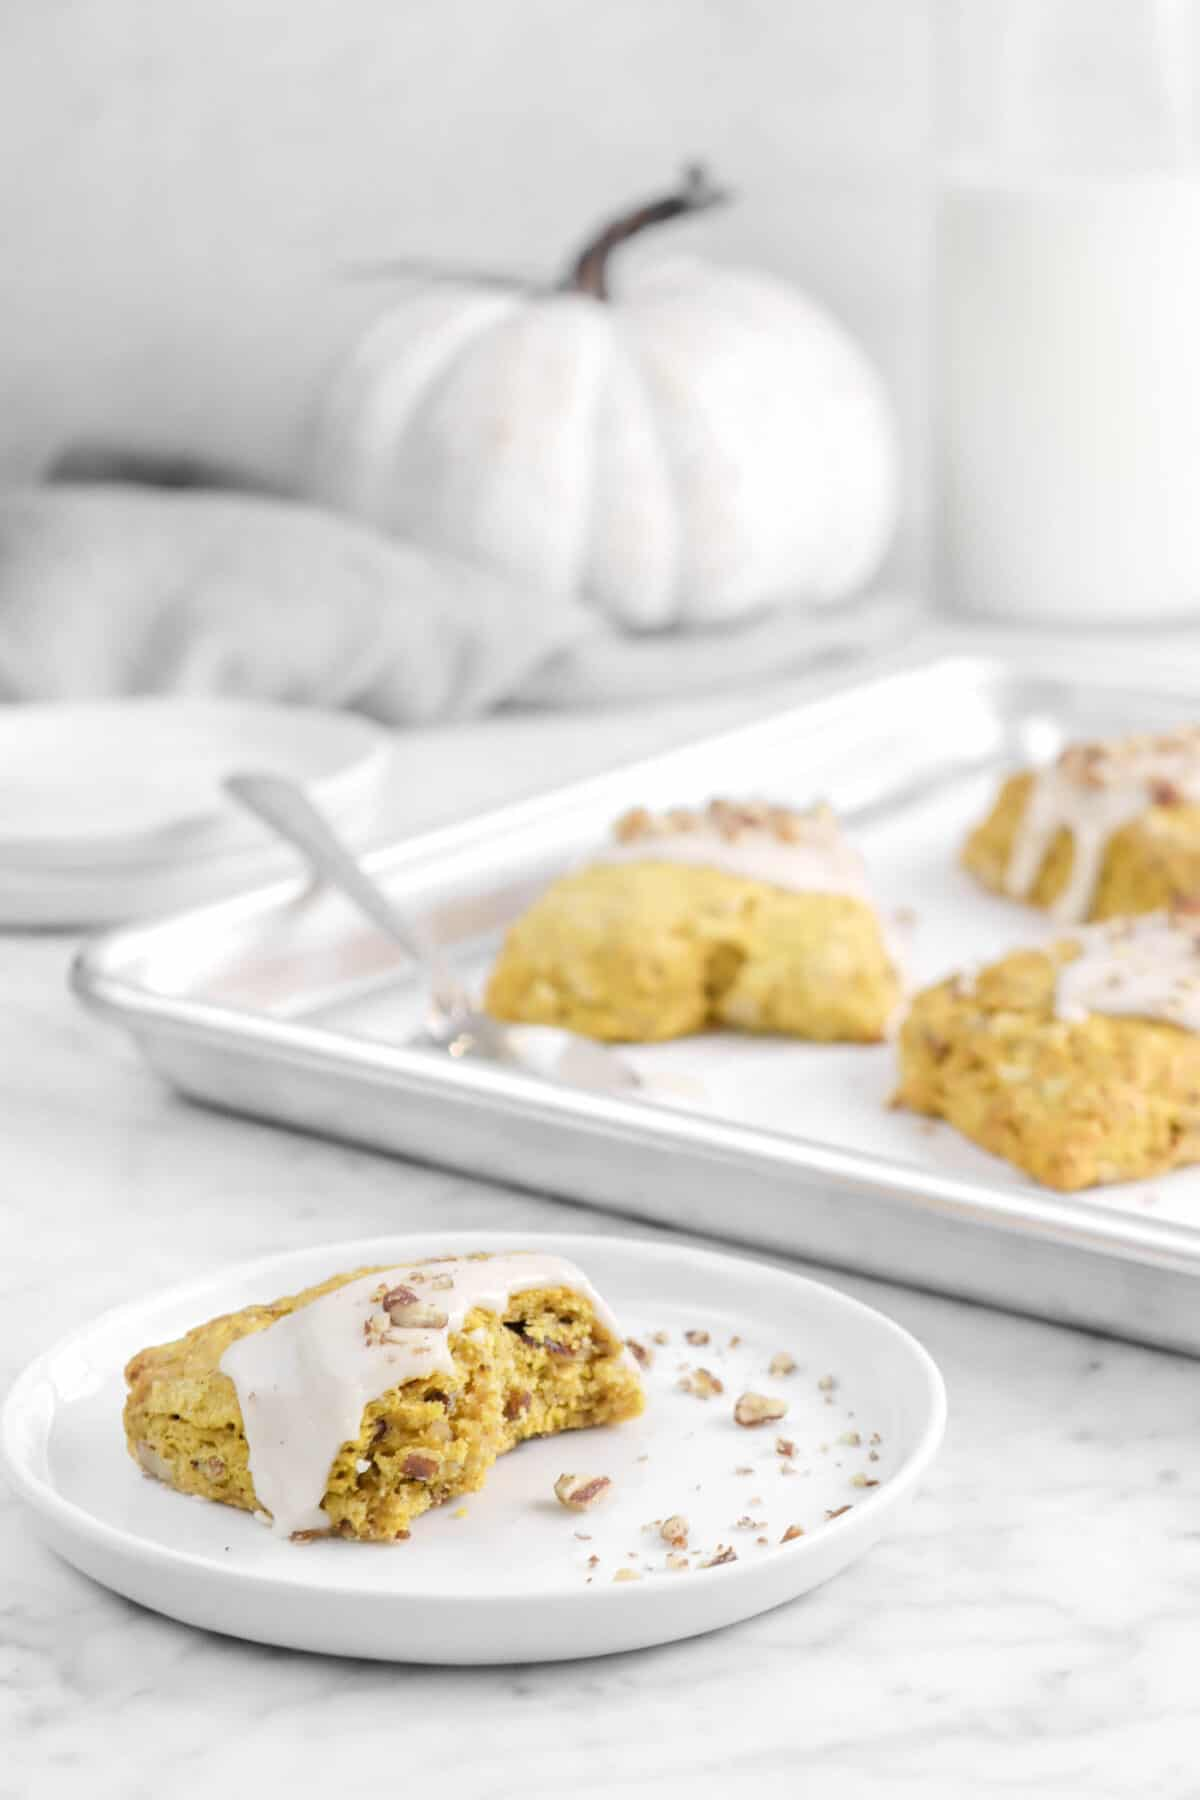 scone on a plate with more scones, a pumpkin, and napkin behind